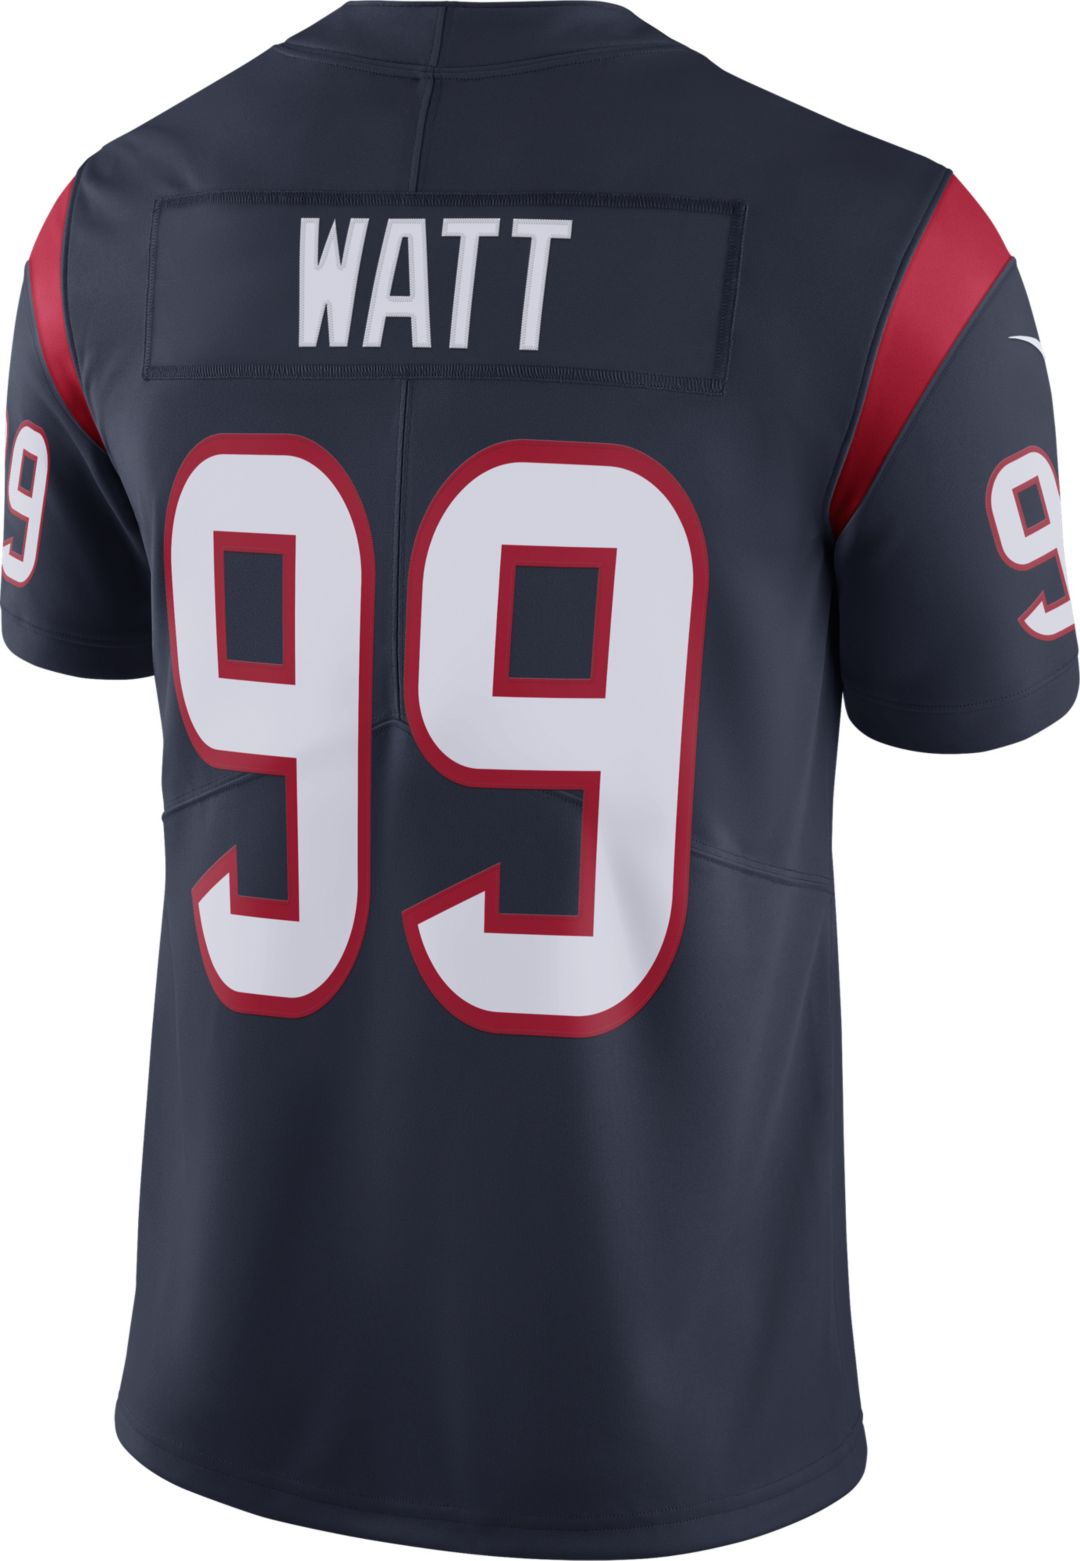 size 40 39a10 6794b Nike Men's Home Limited Jersey Houston Texans J.J. Watt #99